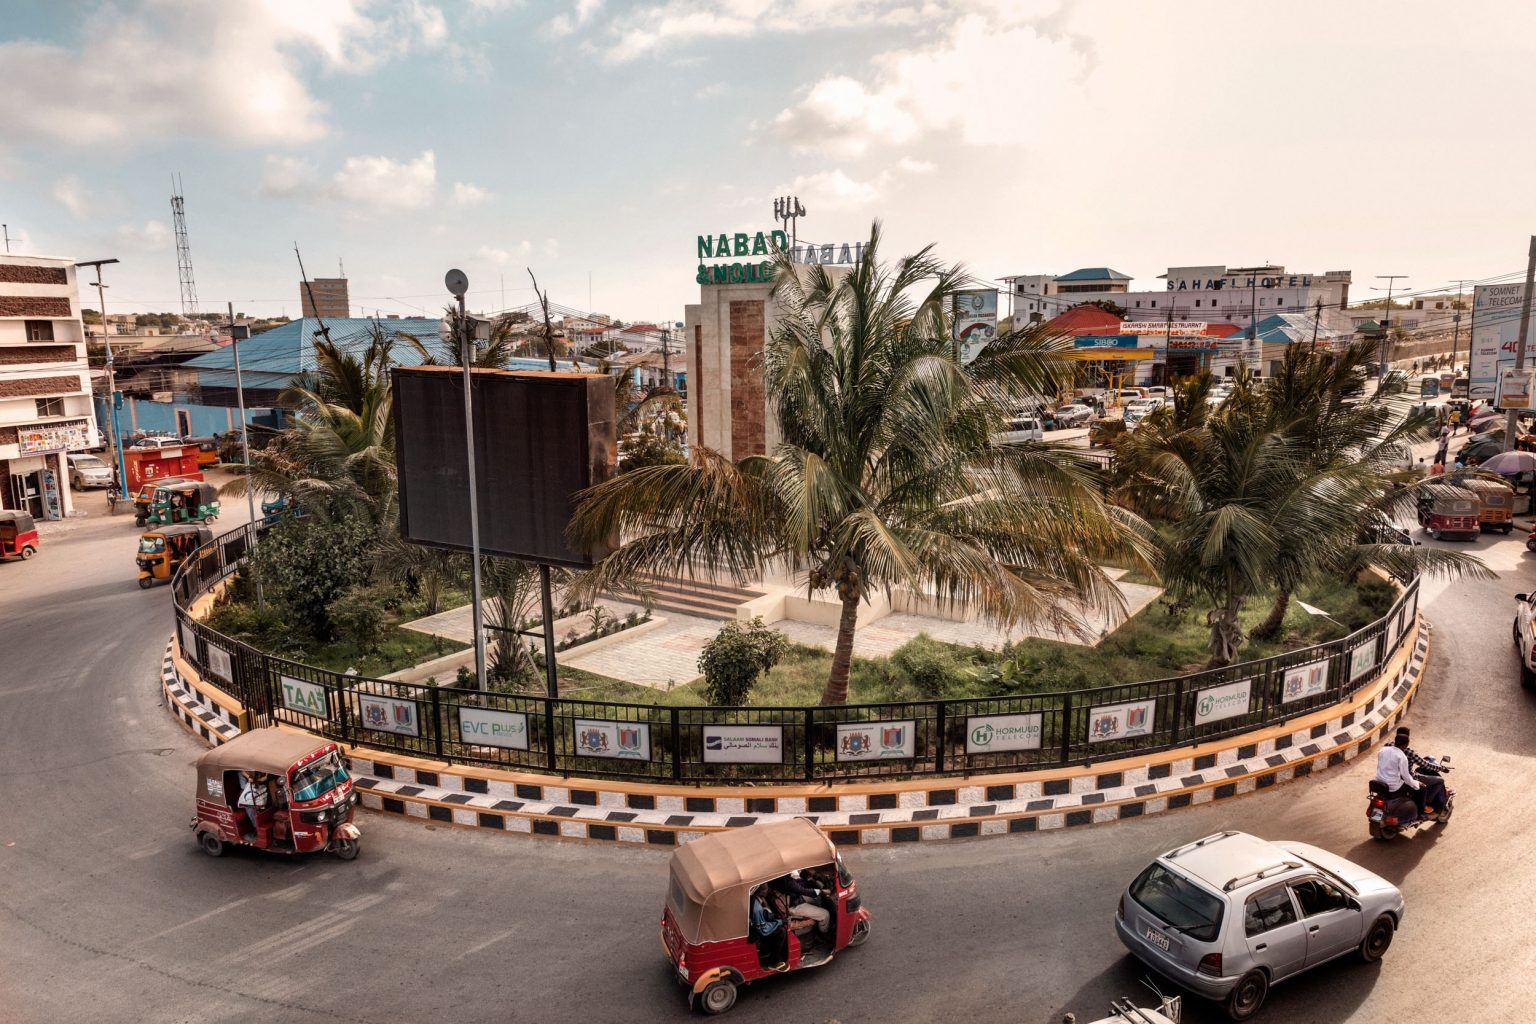 """Africa, Somalia, Benaadir region. Mogadishu. 12/09/2017. The roundabout of the Km4 square. Until 2012 the km4 was considered the edge of the """"green zone"""". The car bombs, the suicide attacks, the journalists murdered and the mortar rounds fired during the night against Villa Somalia are proof that while Al-Shabaab may have been weakened, it has not been defeated. From a struggle for position fought out on the battlefield, the movement has shifted towards a new underground, asymmetric Al-Qaeda-style strategy aimed at heightening the sense of insecurity and instability afflicting a population already drained by twenty years of fighting and famine."""